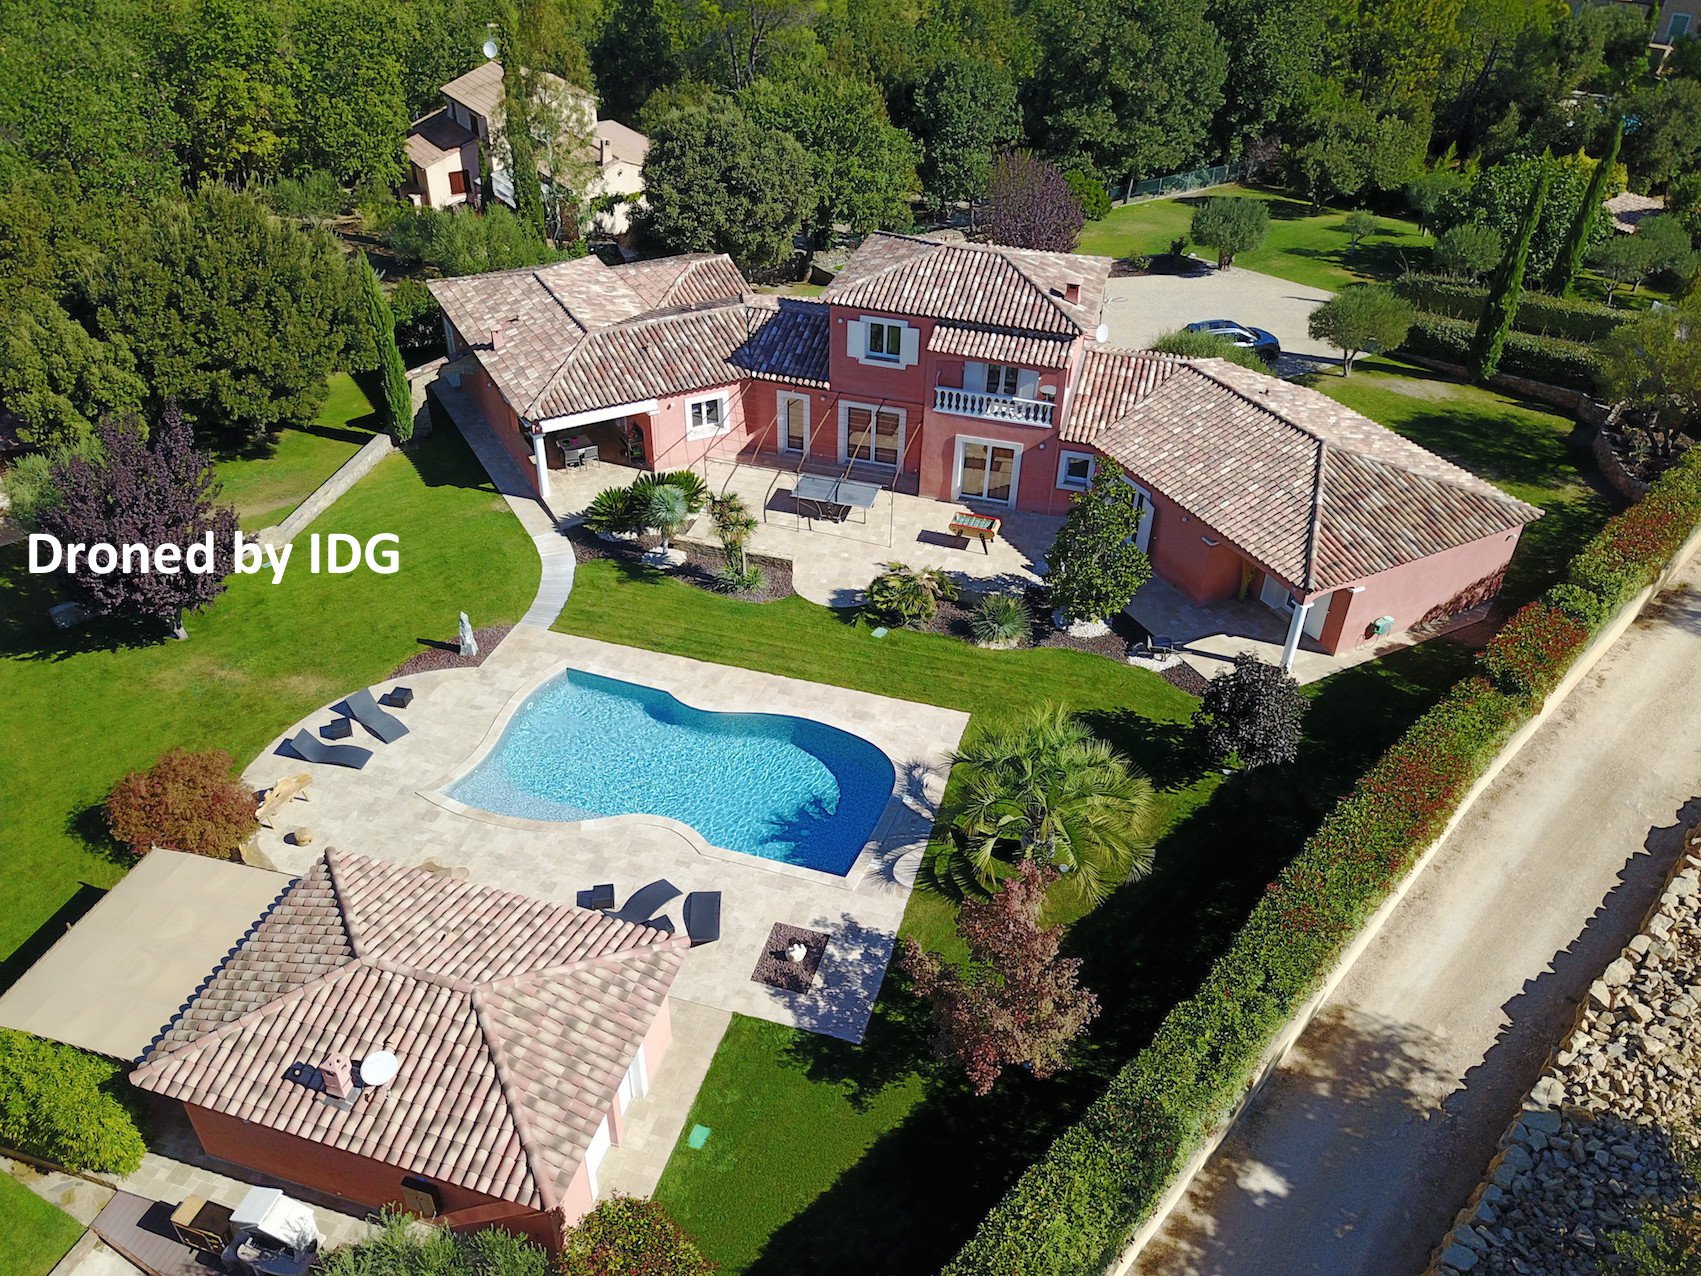 Besse sur Issole, an exceptional house in the region